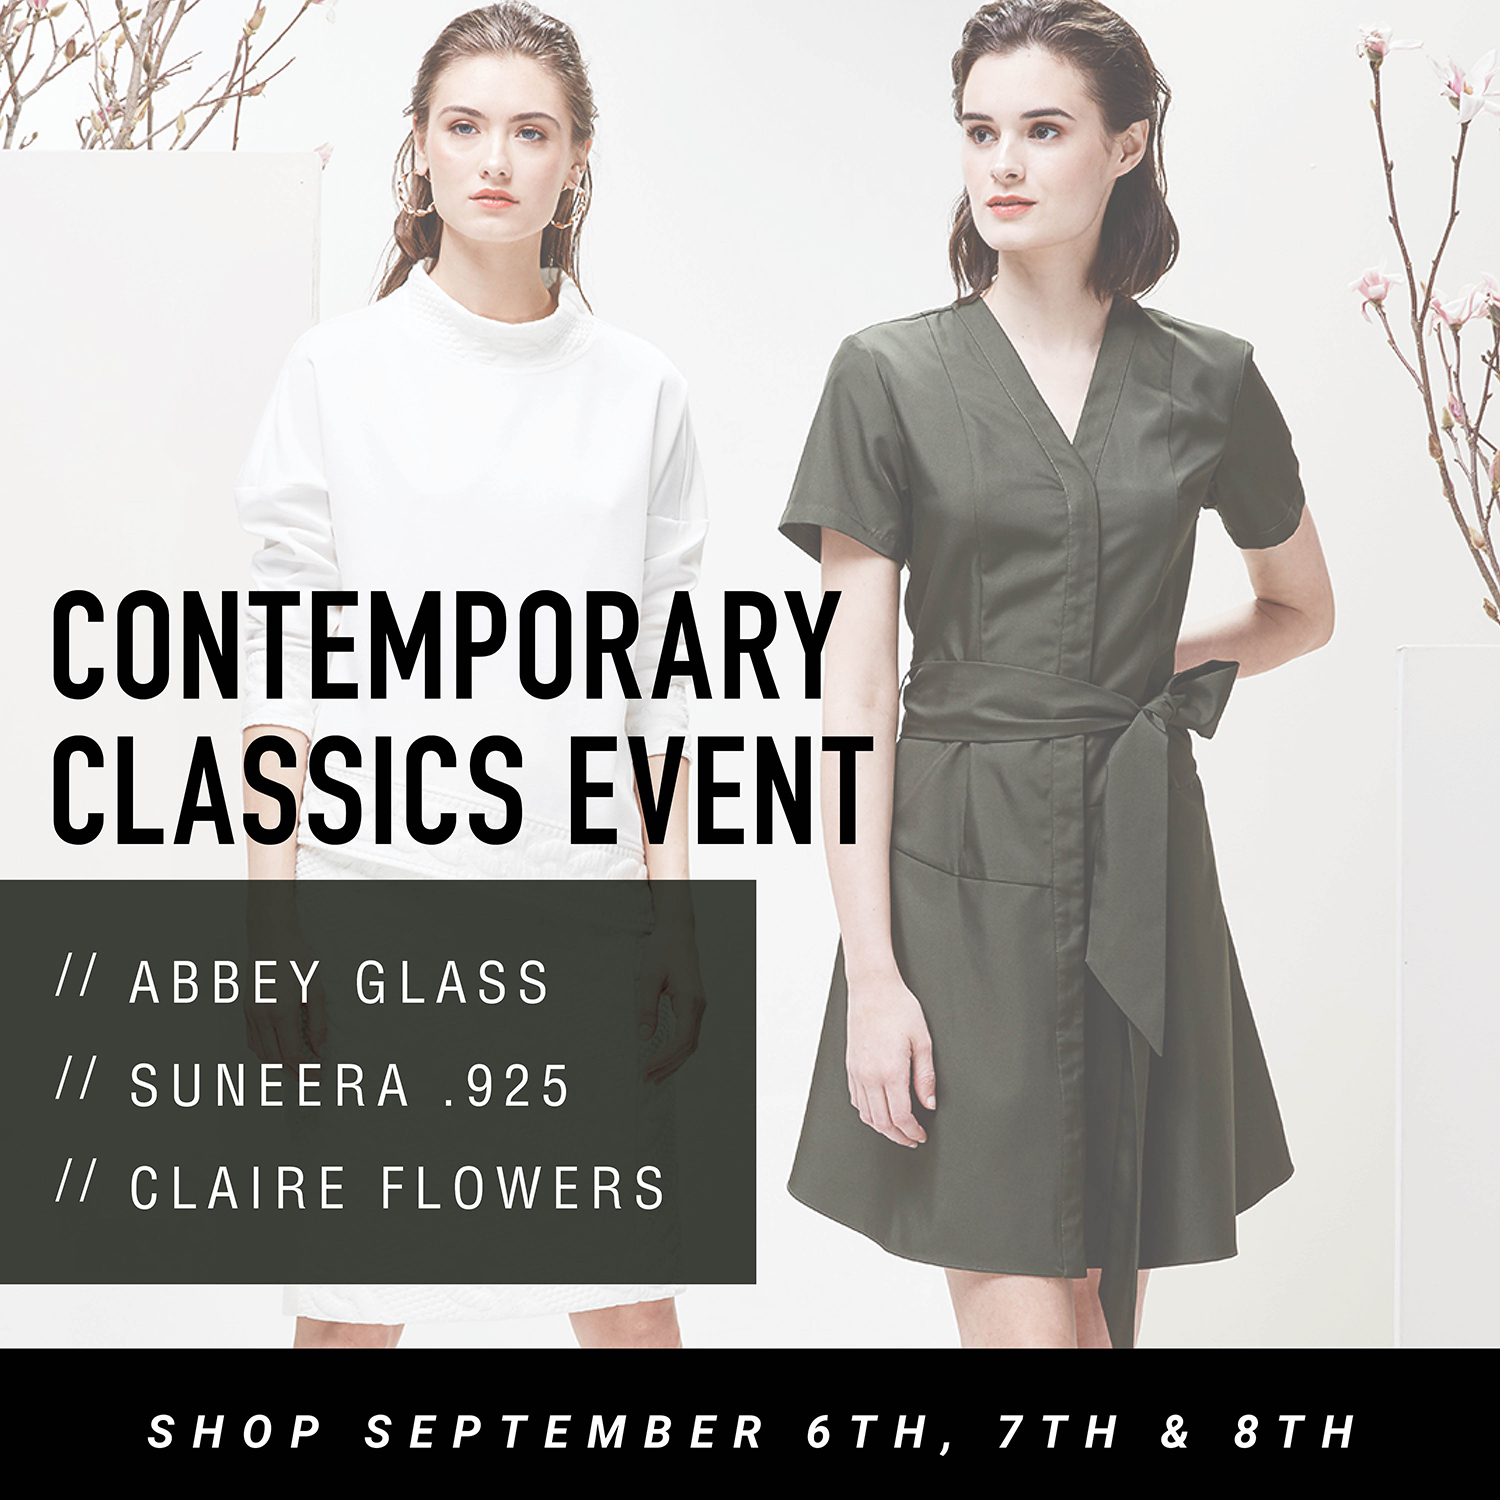 Contemporary Classics Event September 6th, 7th, and 8th